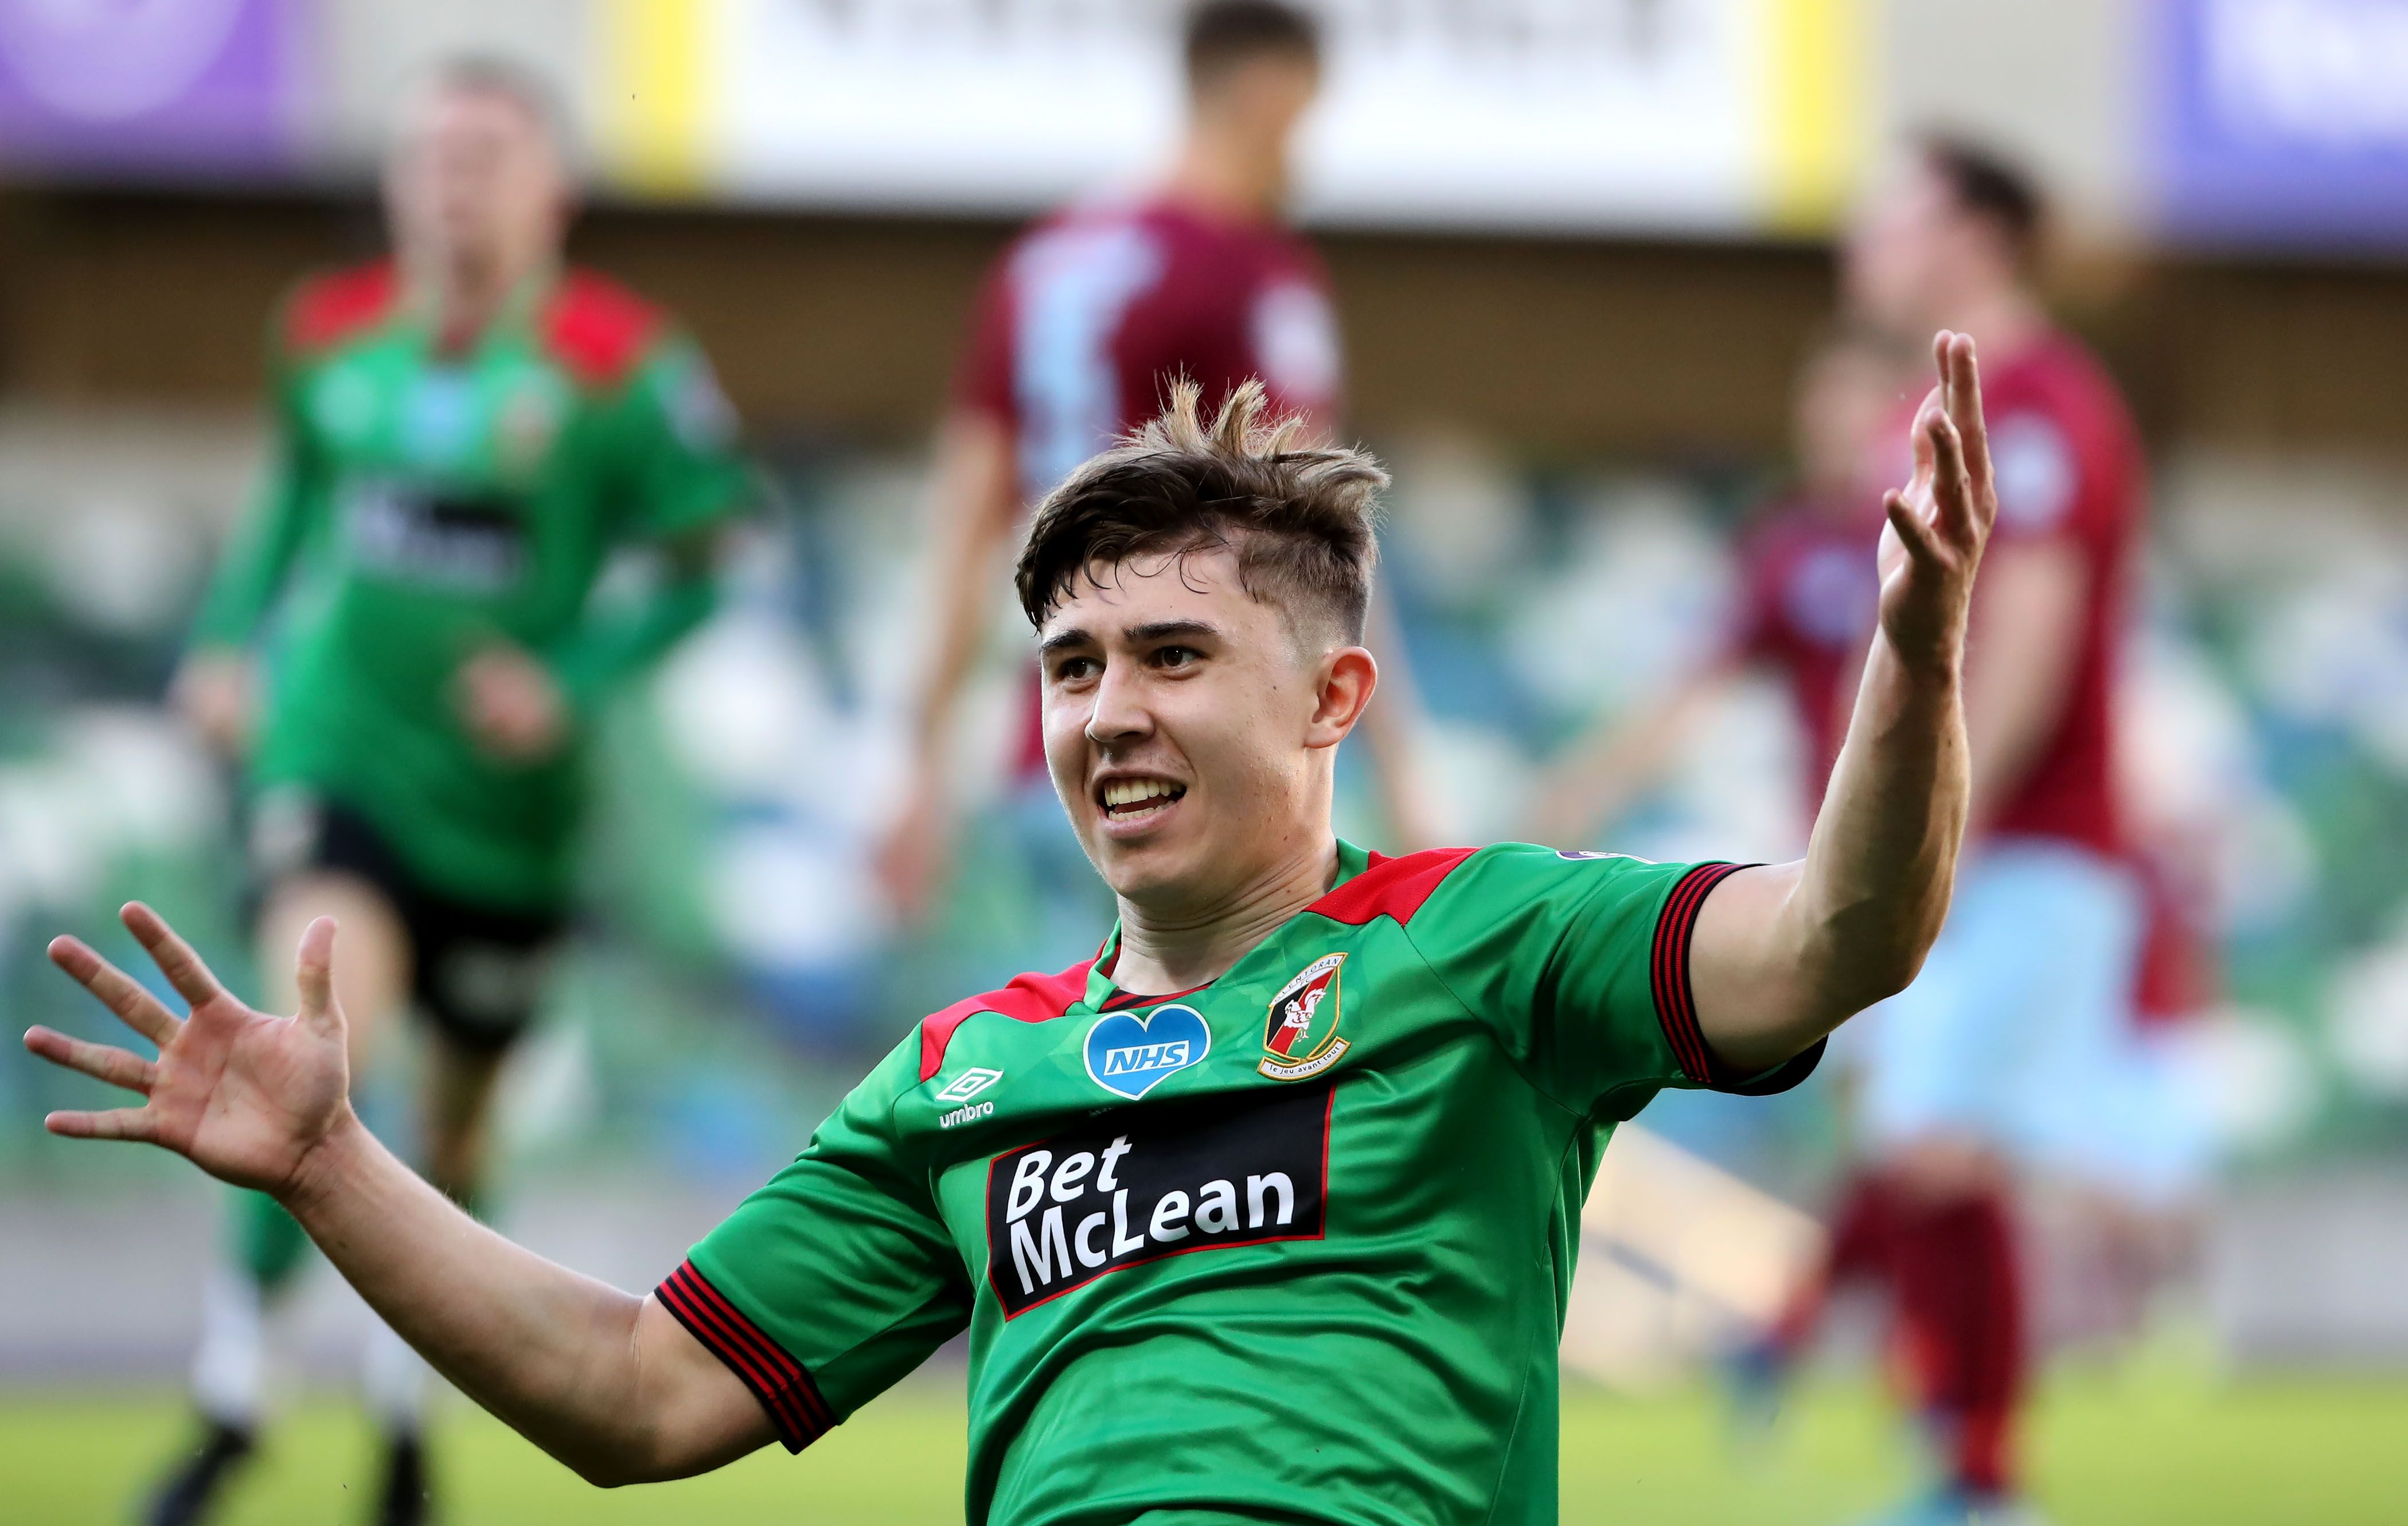 Paul O'Neill will return to The Oval to face his old club having made the switch to Cliftonville on Sunday as part of a deal that saw Conor McMenamin head in the opposite direction